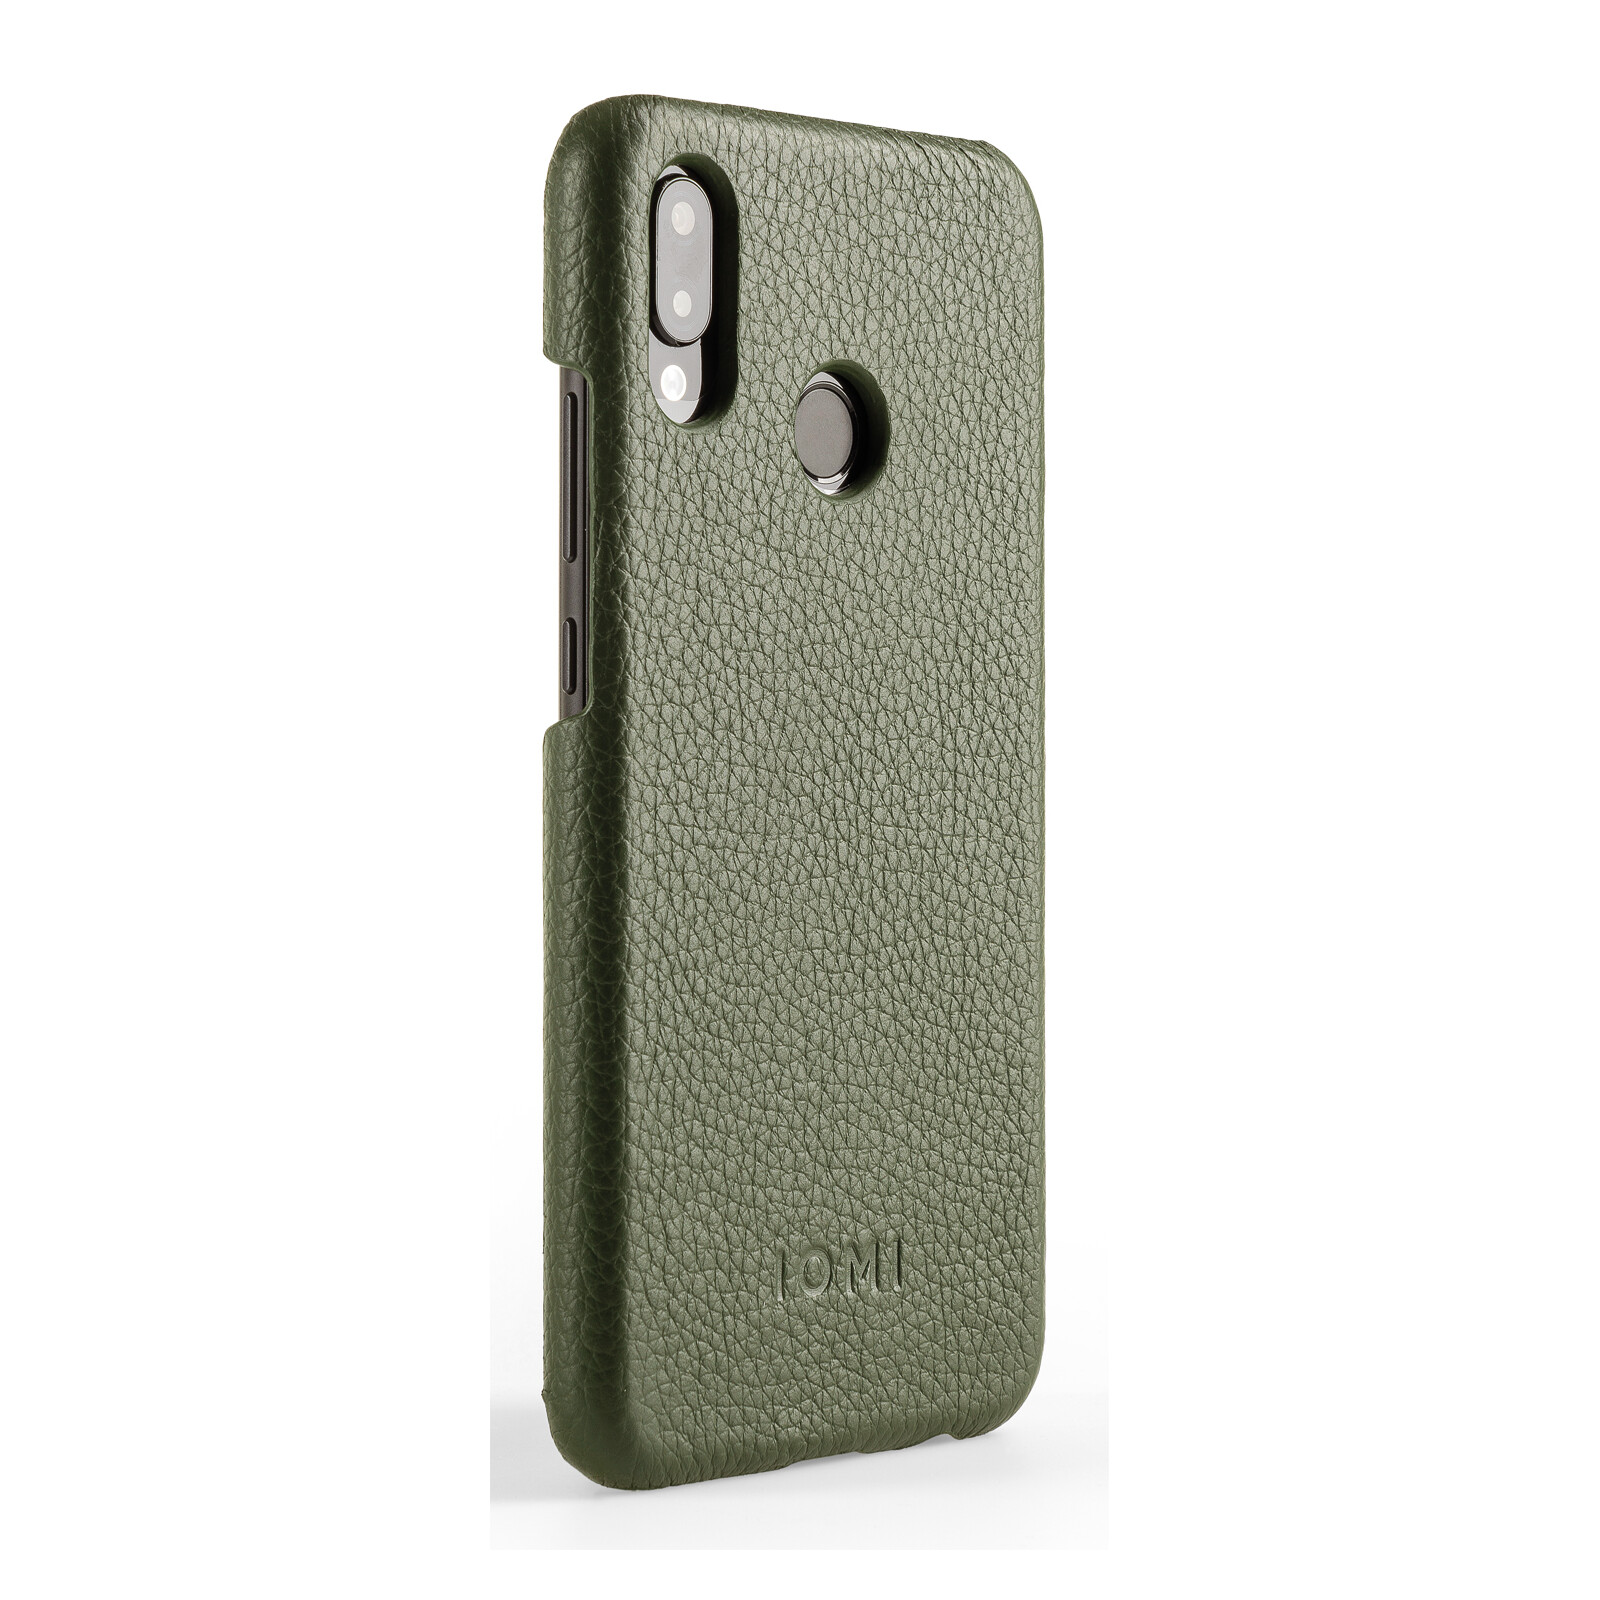 IOMI Backcover Huawei P20 Lite olive